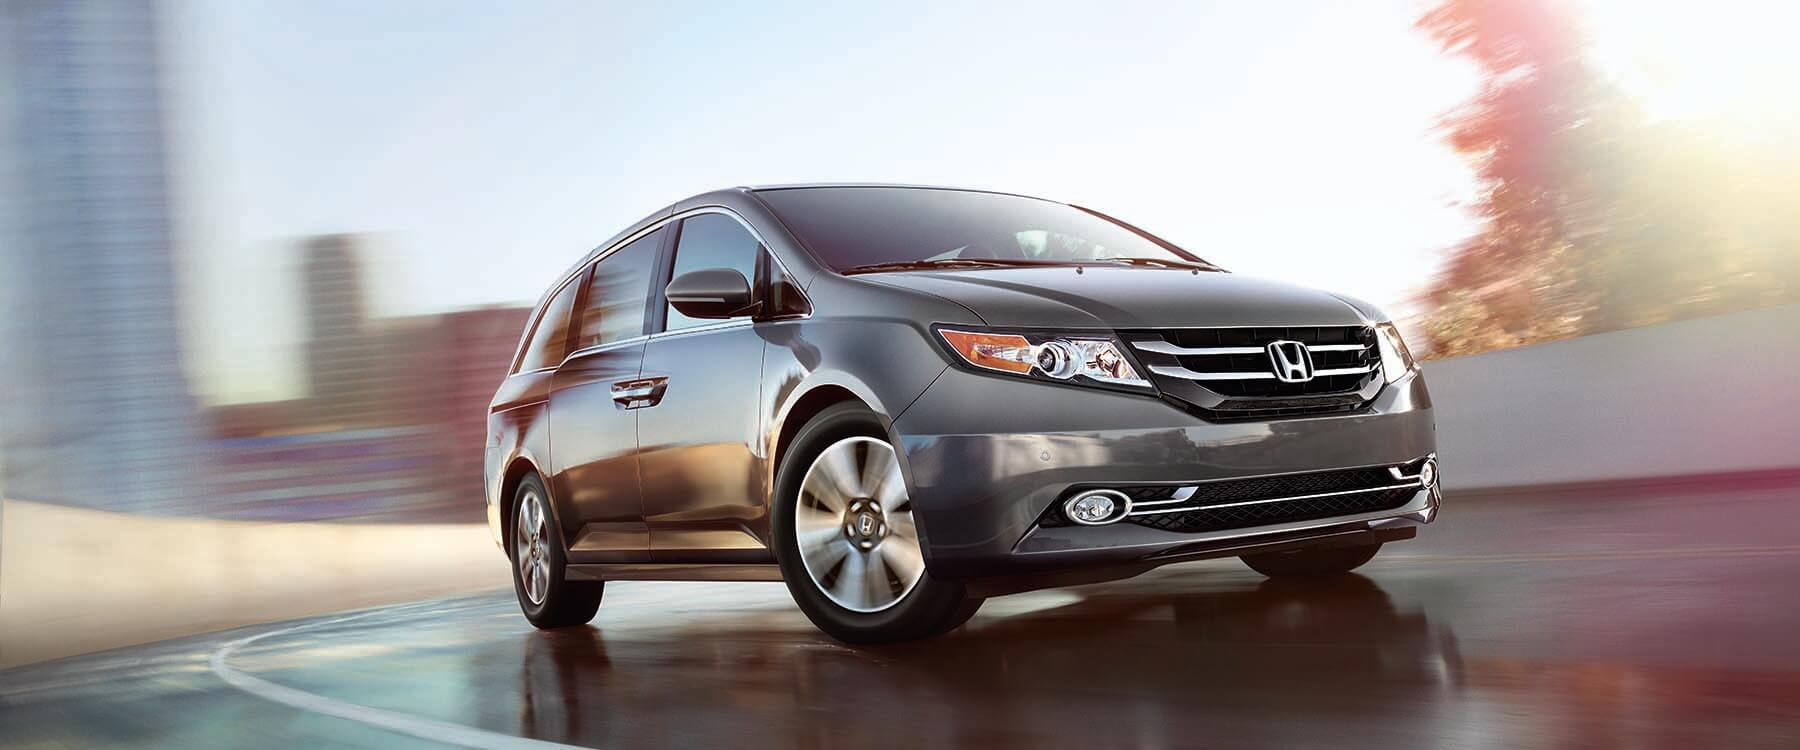 Customize Your Minivan With 2017 Honda Odyssey Accessories